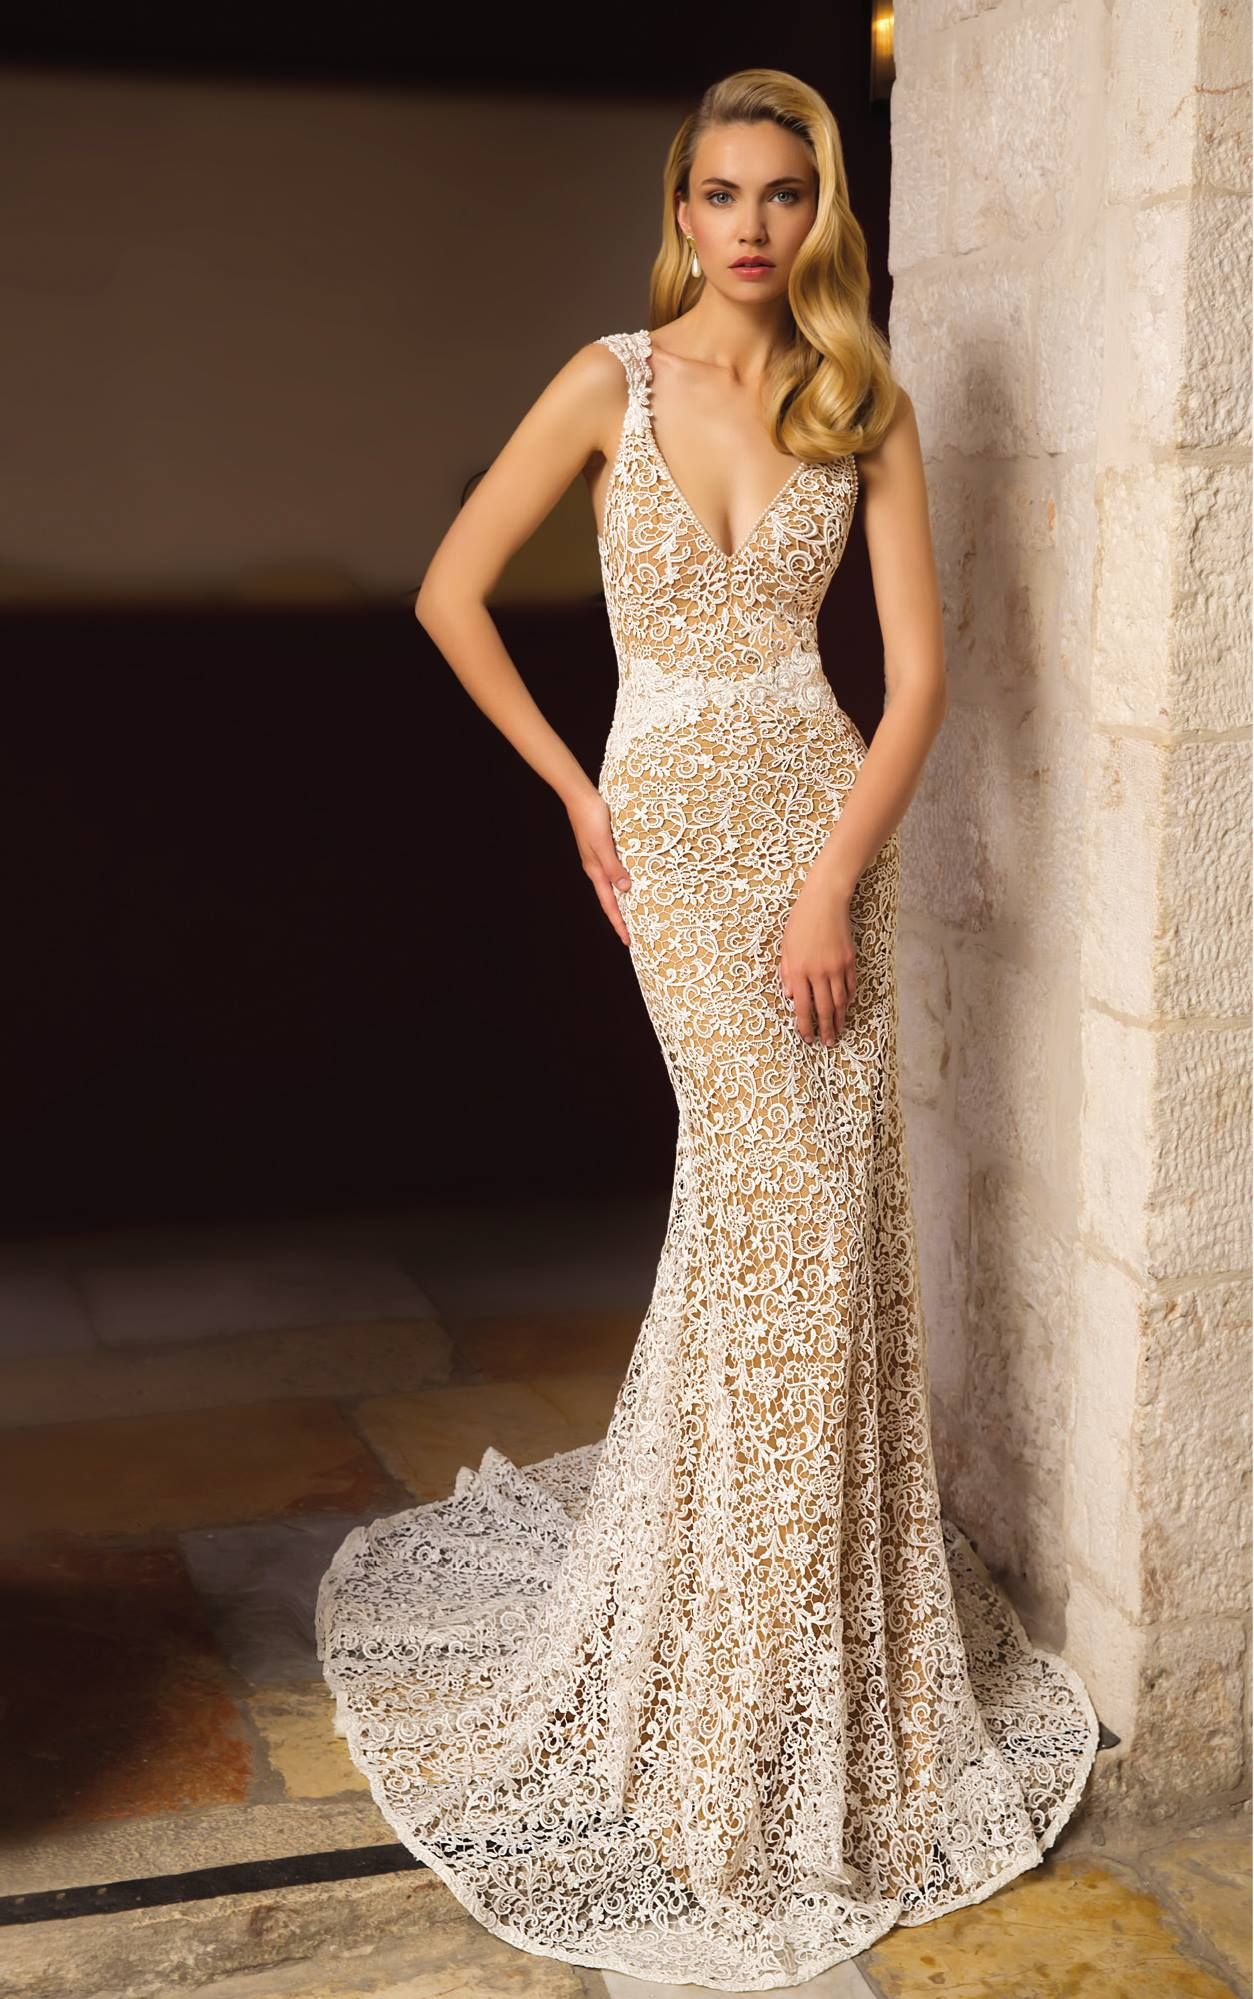 A slim, elegant bridal look from Orabella. See more from this ...